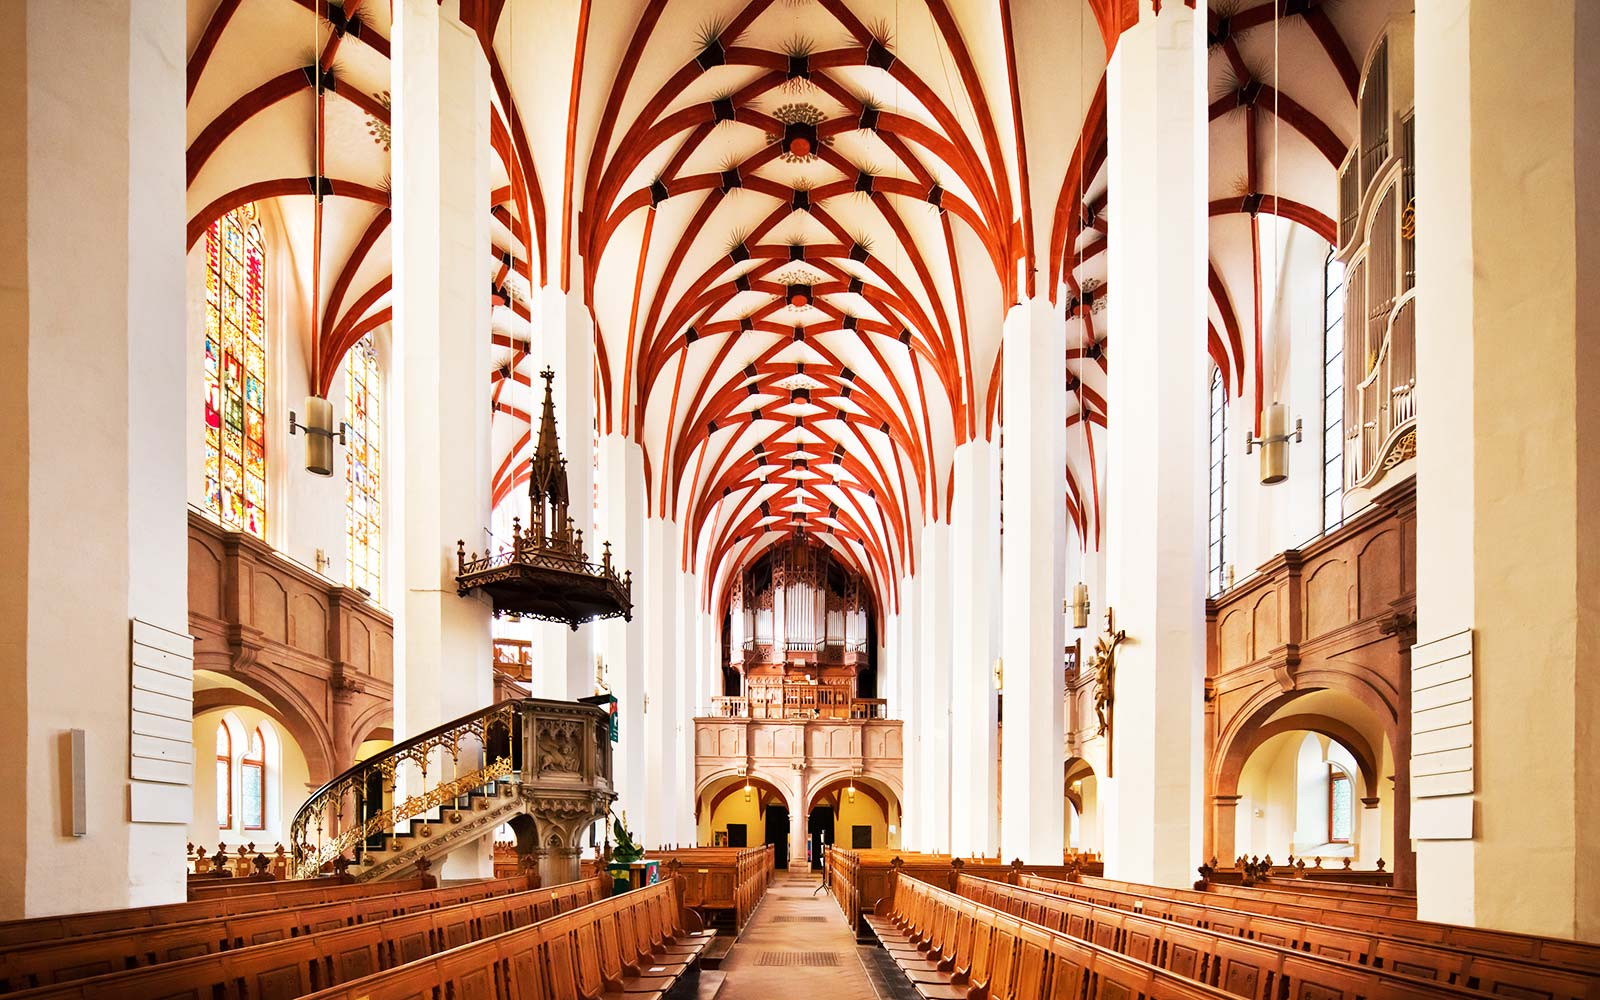 Bach tour of Germany